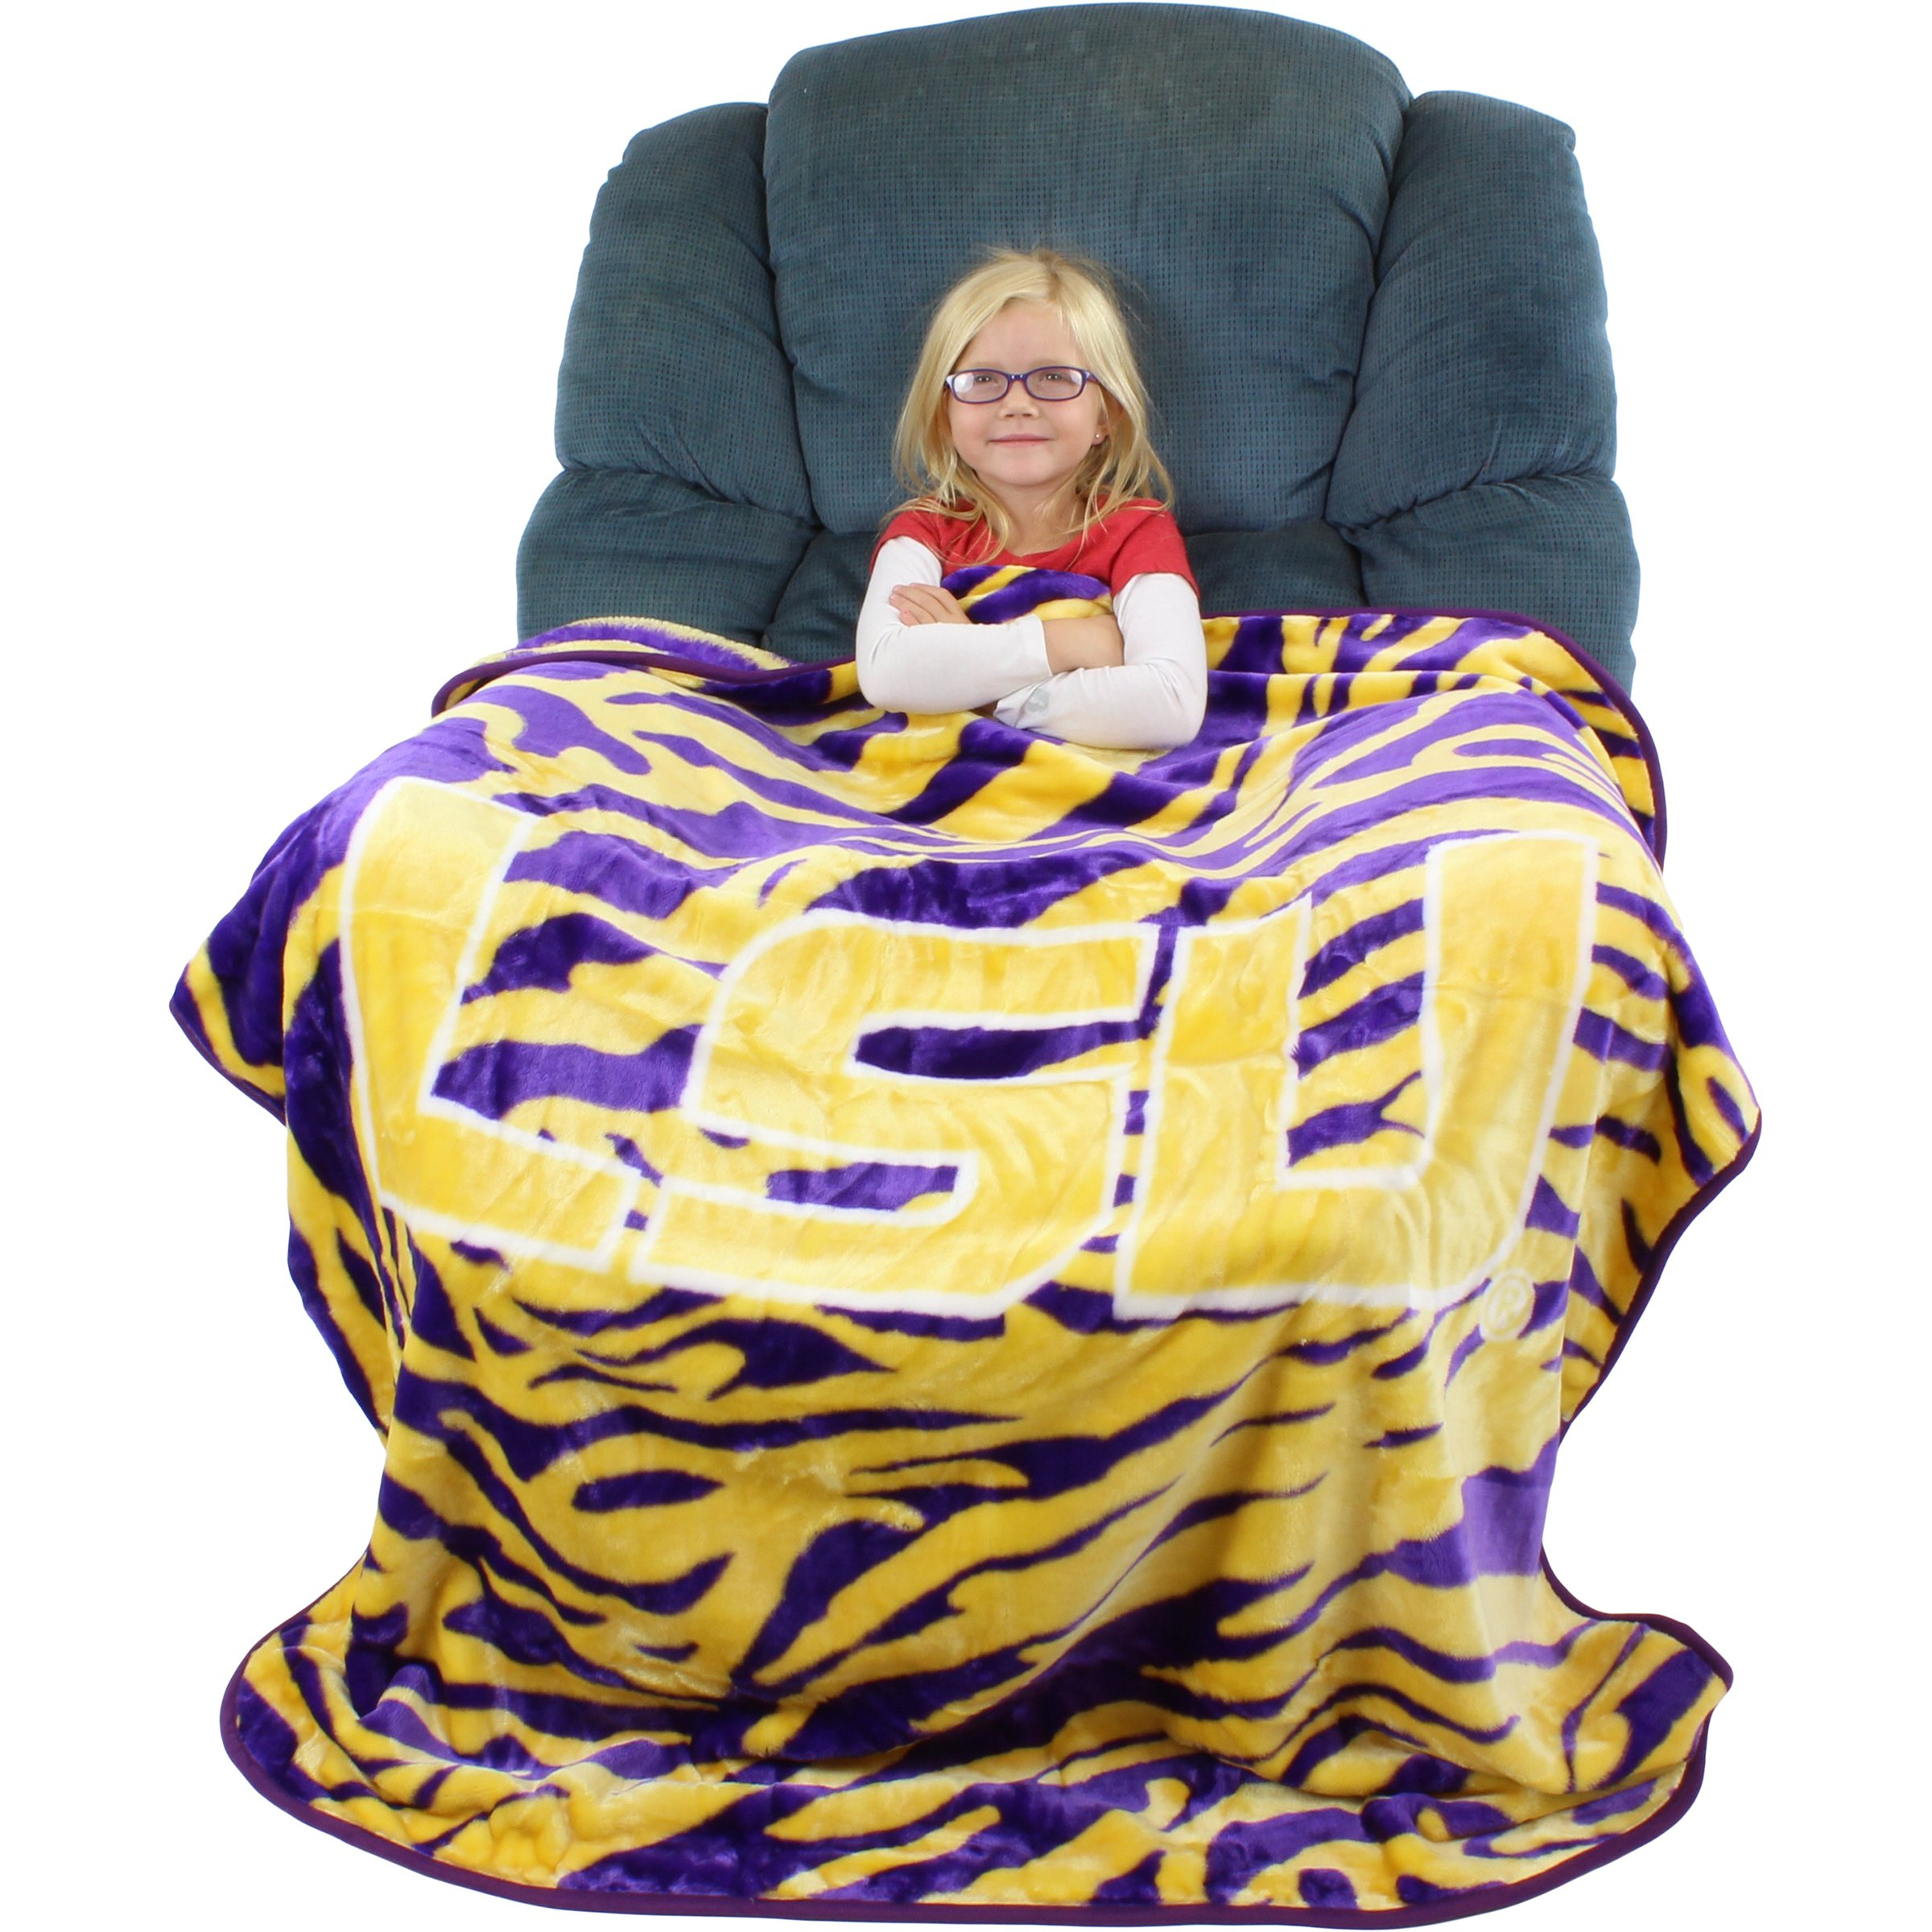 College Covers Louisiana State University Tigers Super Soft Raschel Throw Blanket, 50'' x 60''